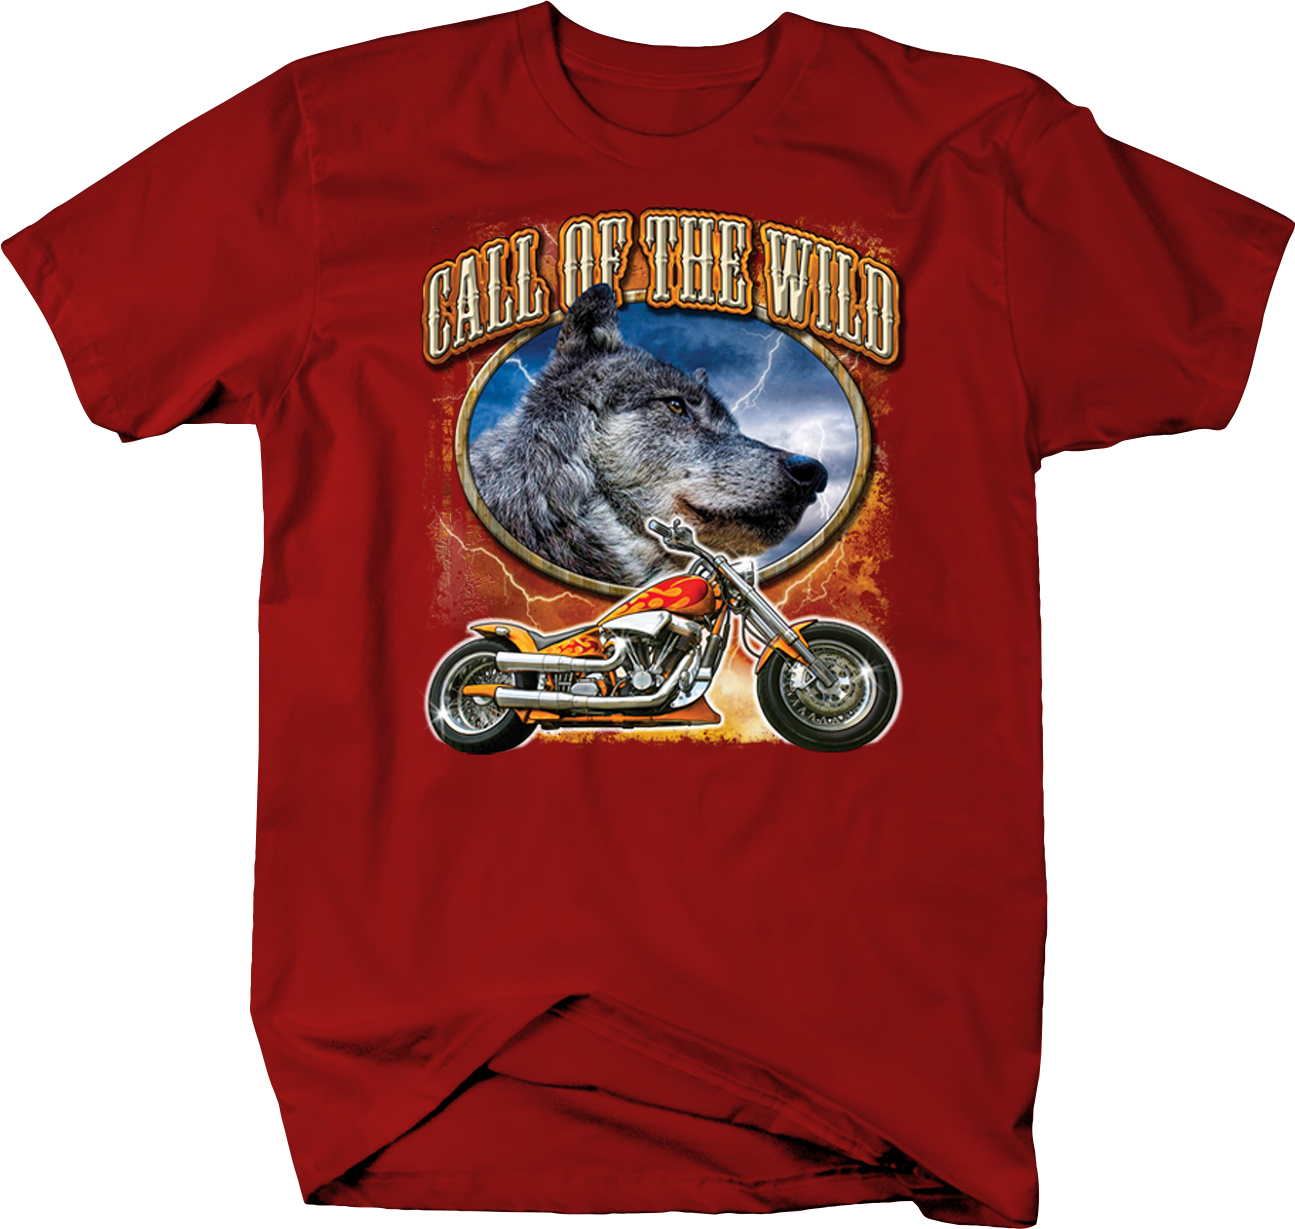 Call Of The Wild Grey Wolf Head And Flames Chopper Motorcycle Shirt With Images Motorcycles Shirt Shirts Grey Wolf